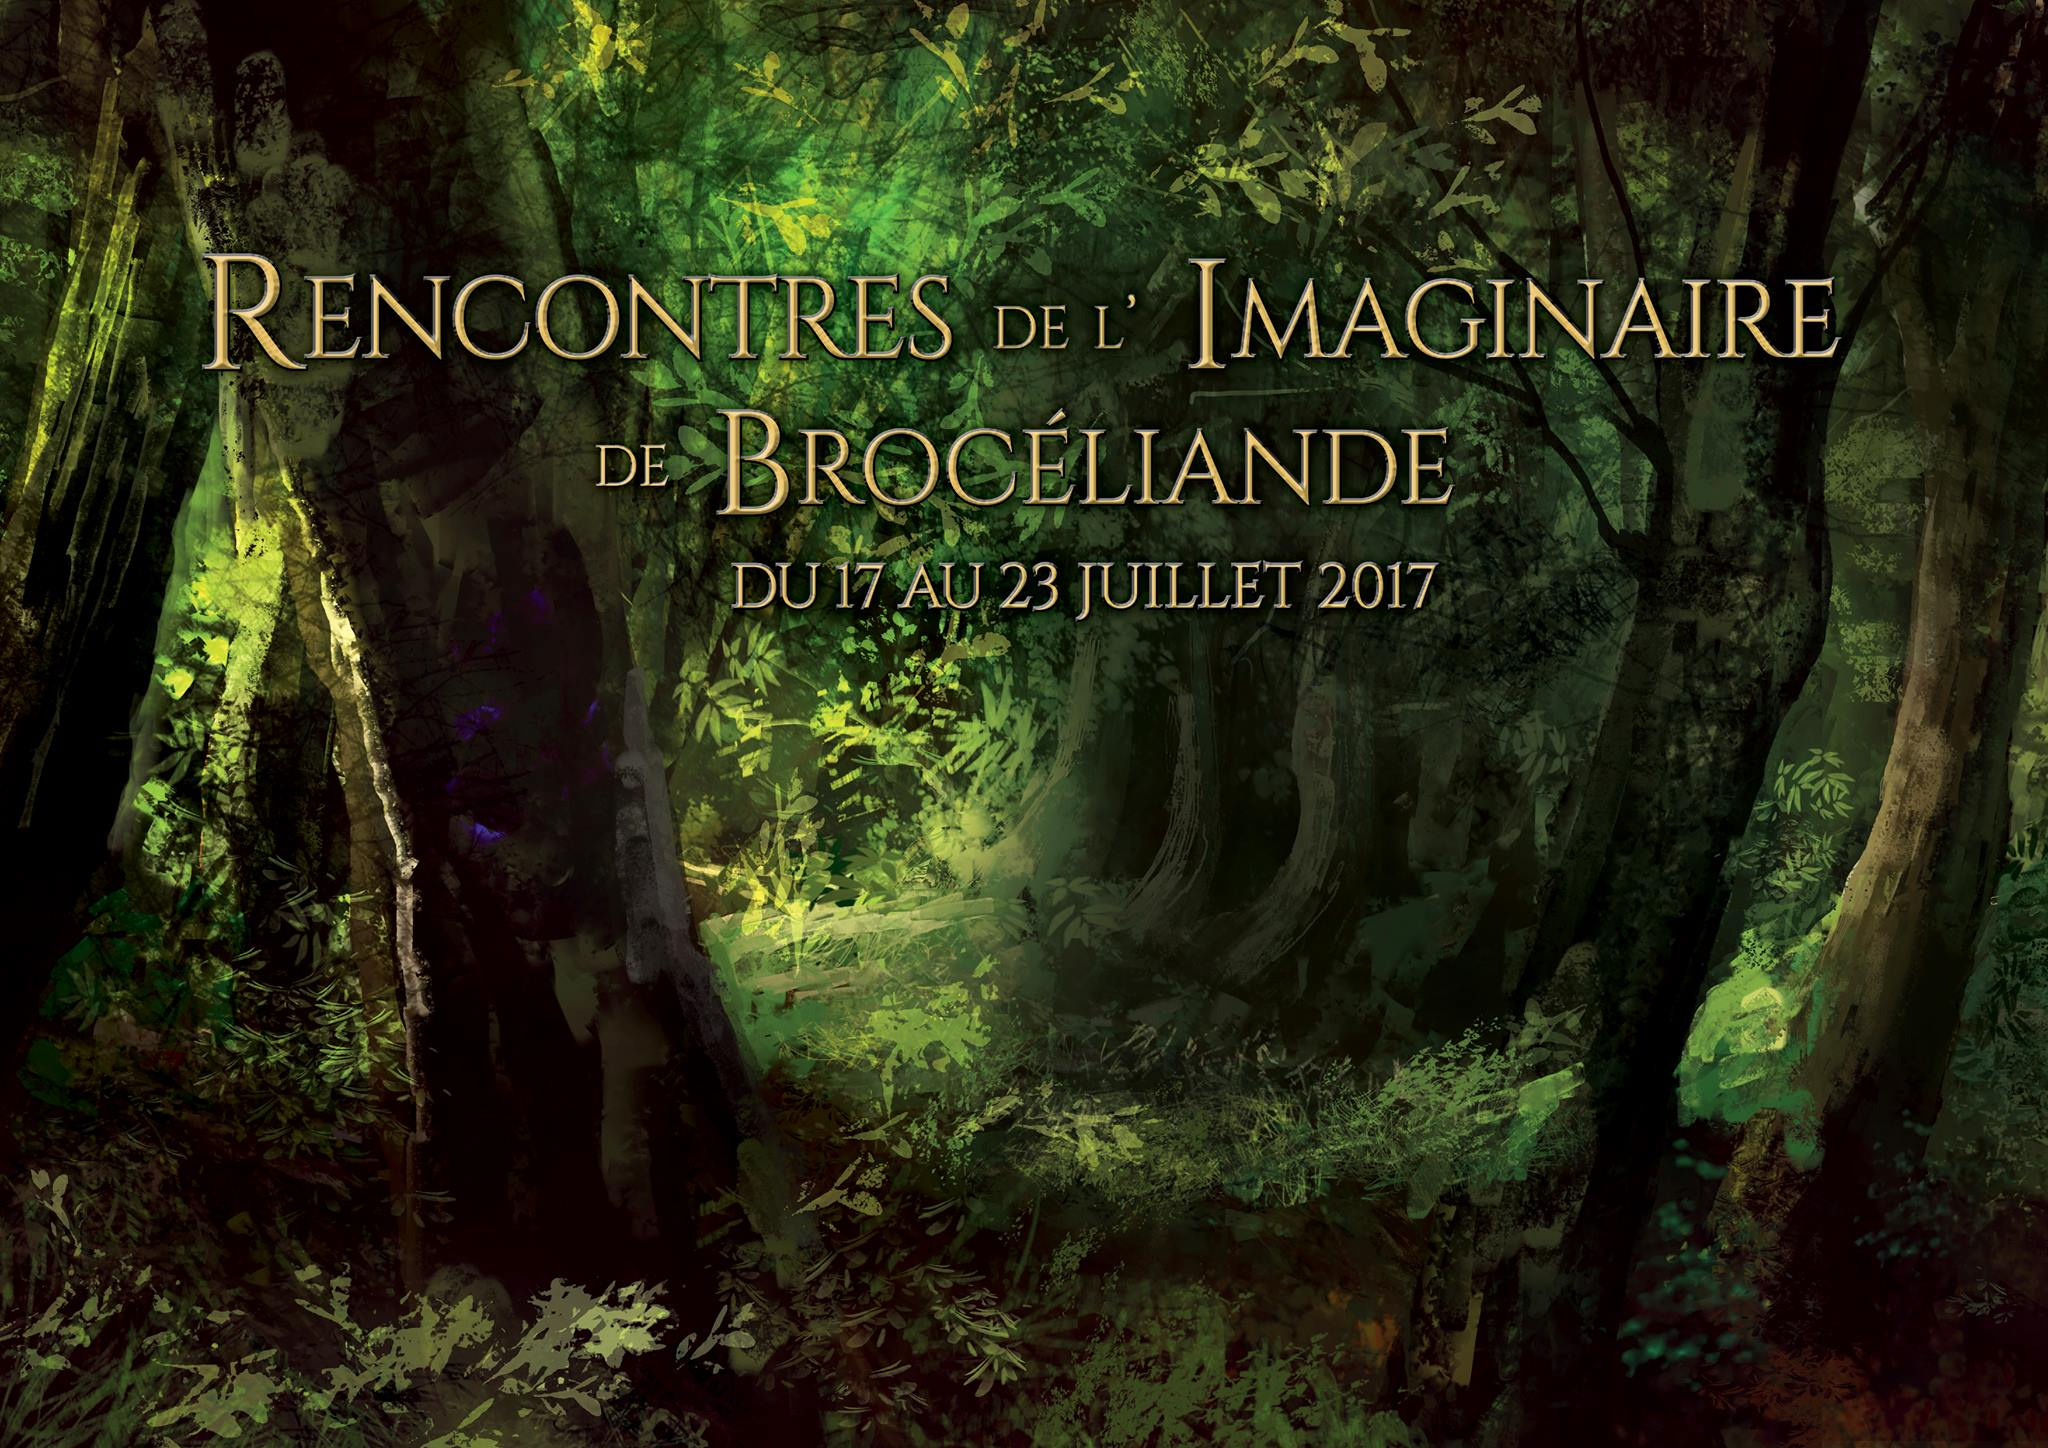 Rencontre imaginaire broceliande